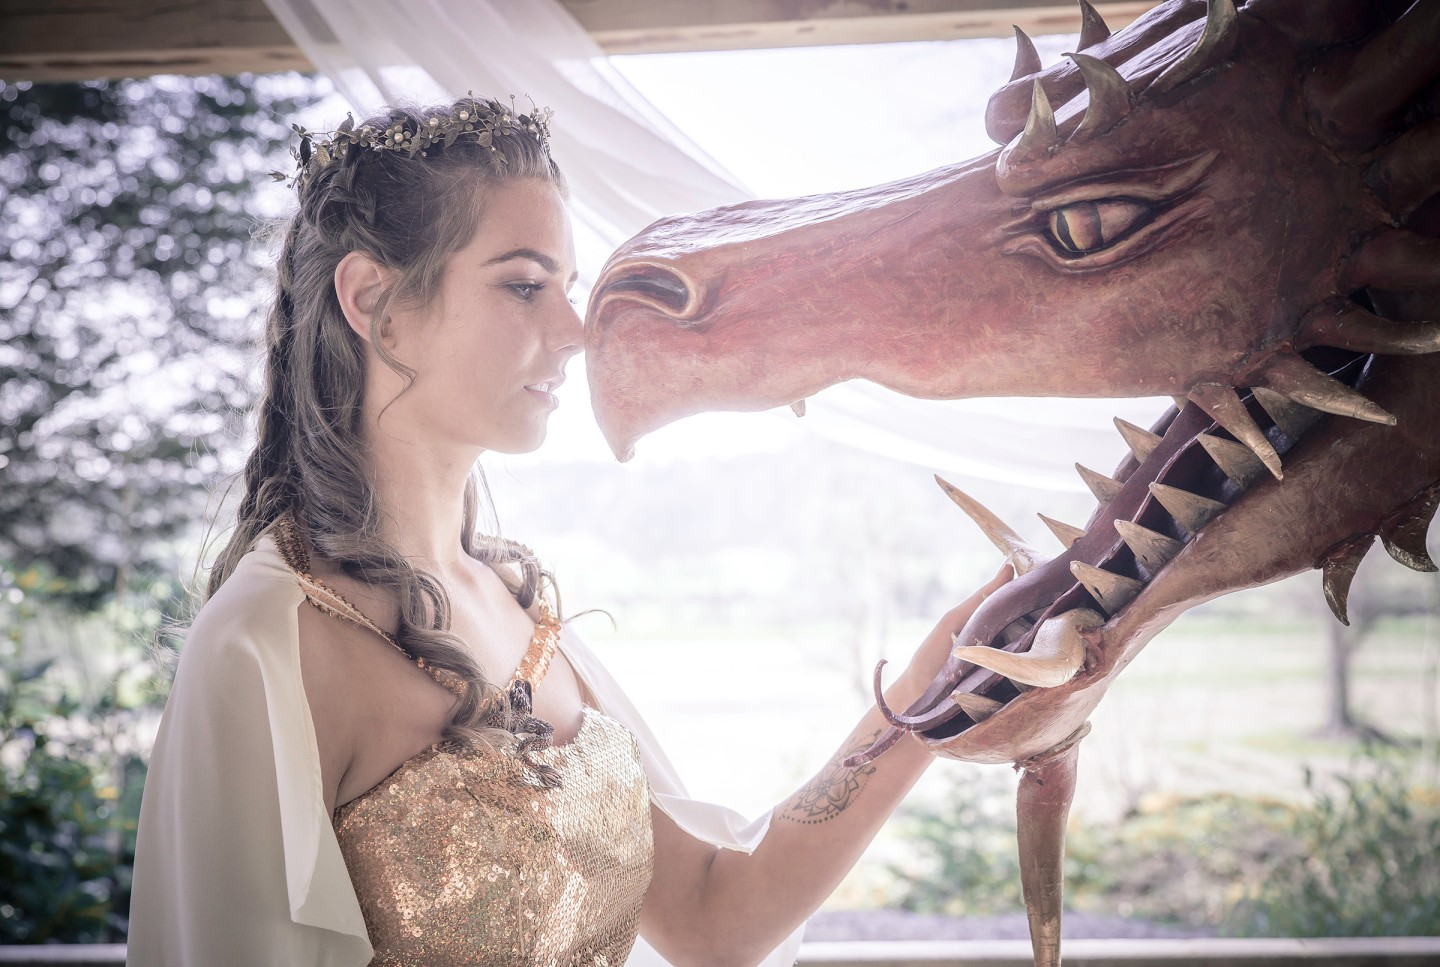 Photo Andy Douglas Photography, styling by that black and white cat weddings 1 - game of thrones wedding - alternative wedding 5